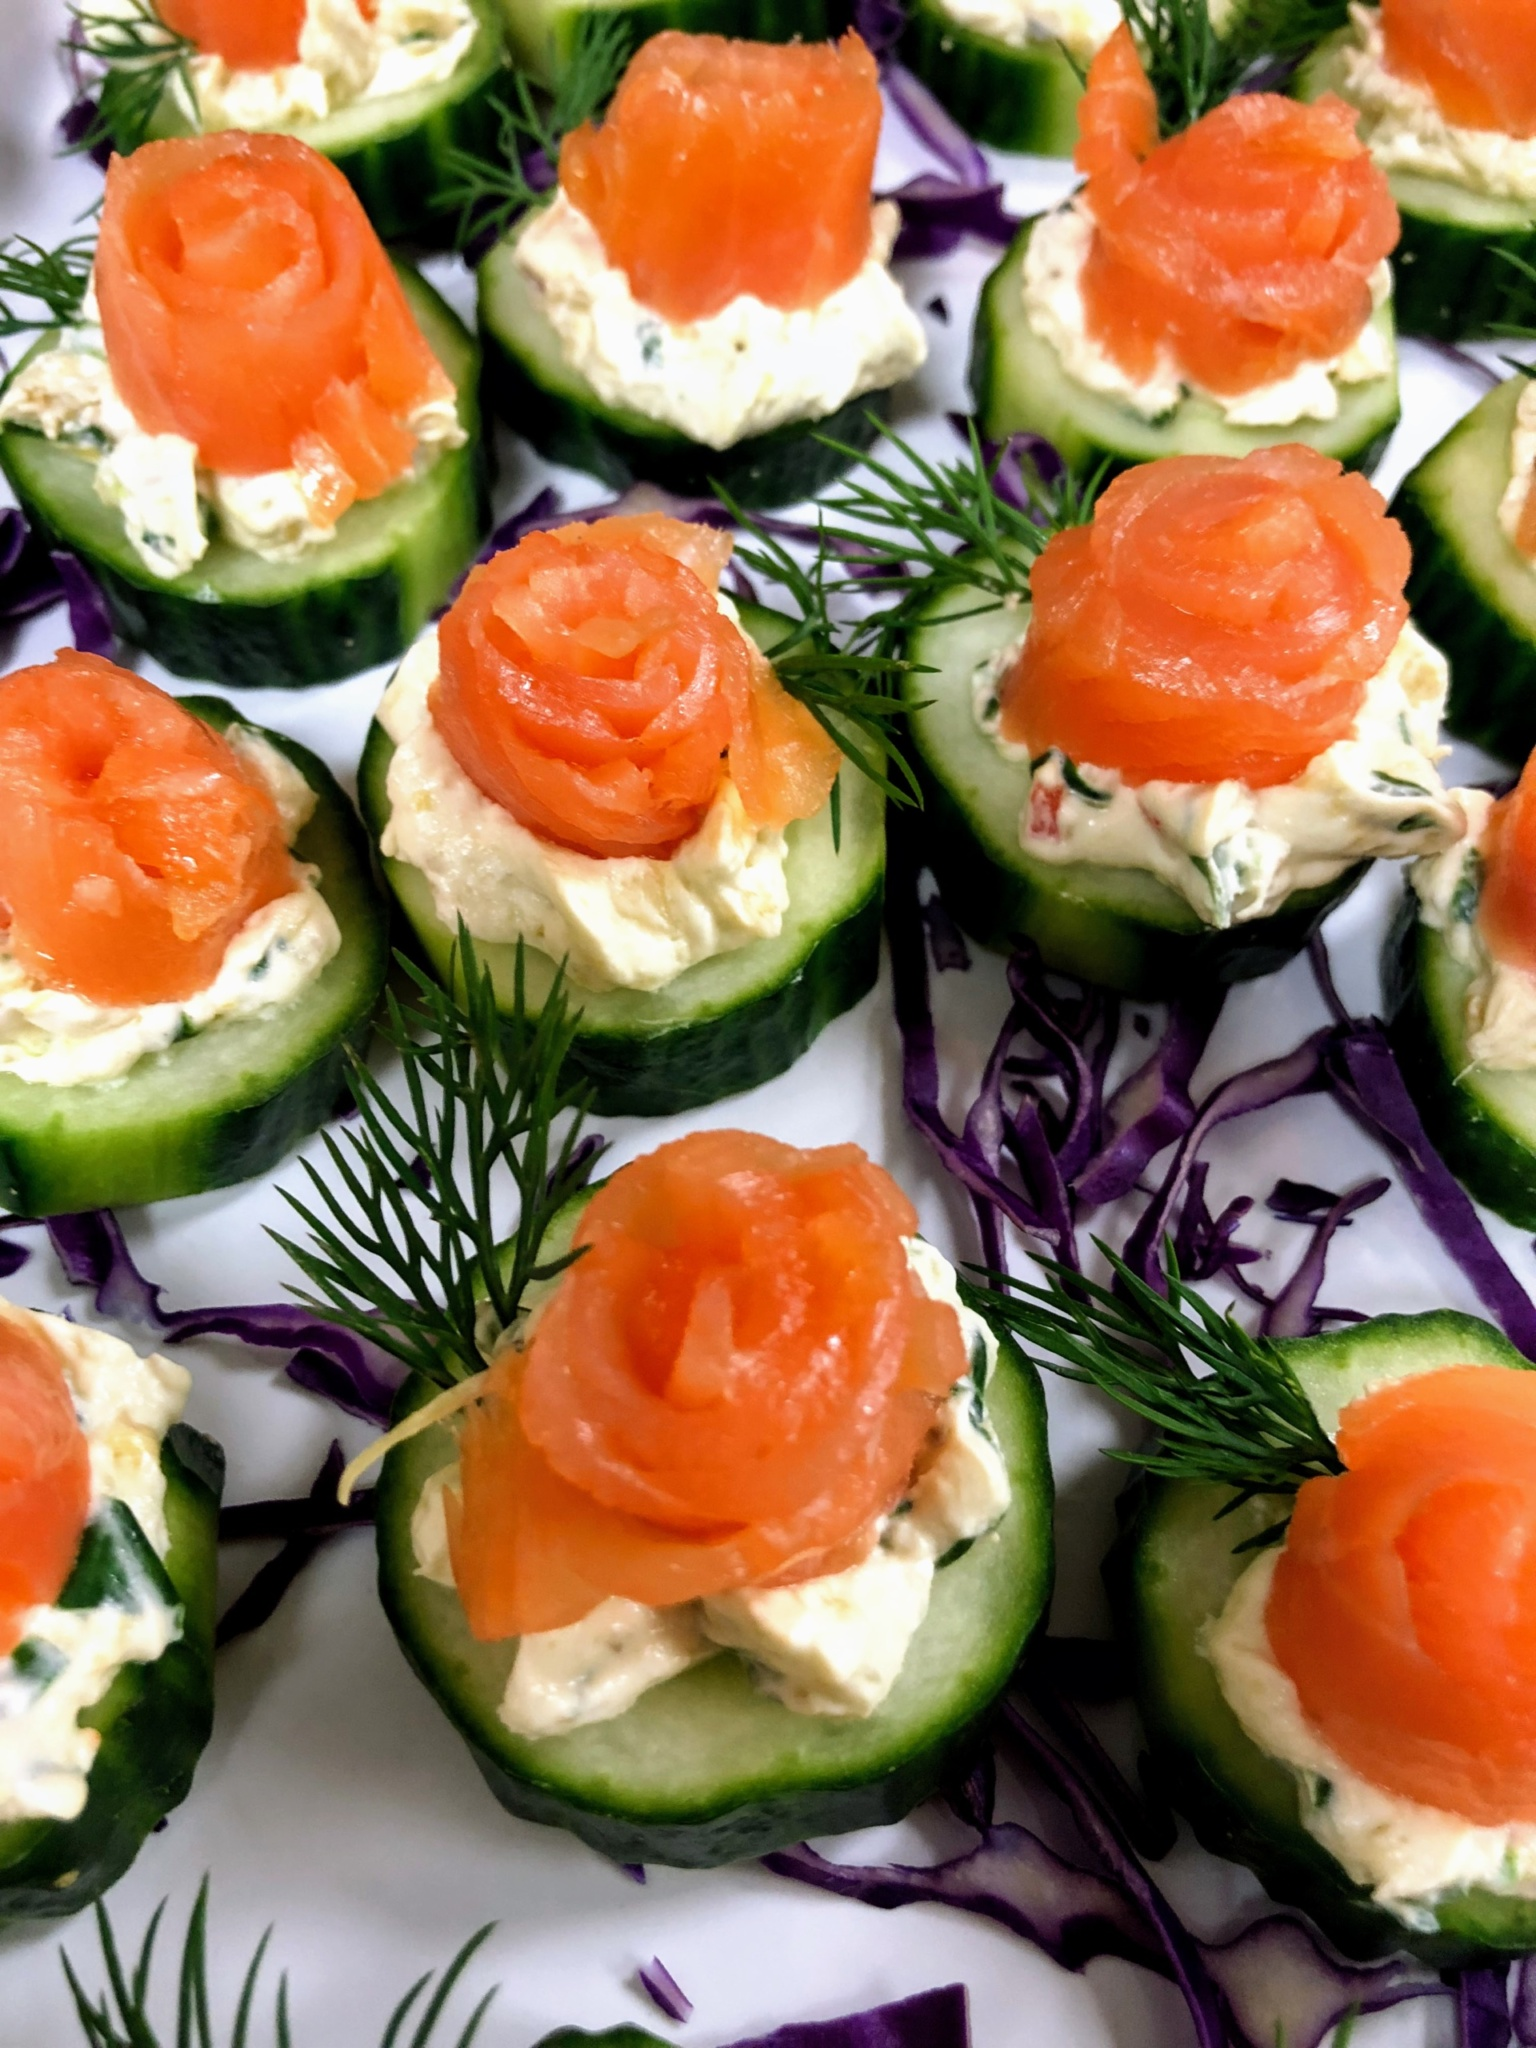 A display of beautifully arranged Salmon Rosettes on cucumber on a white china platter